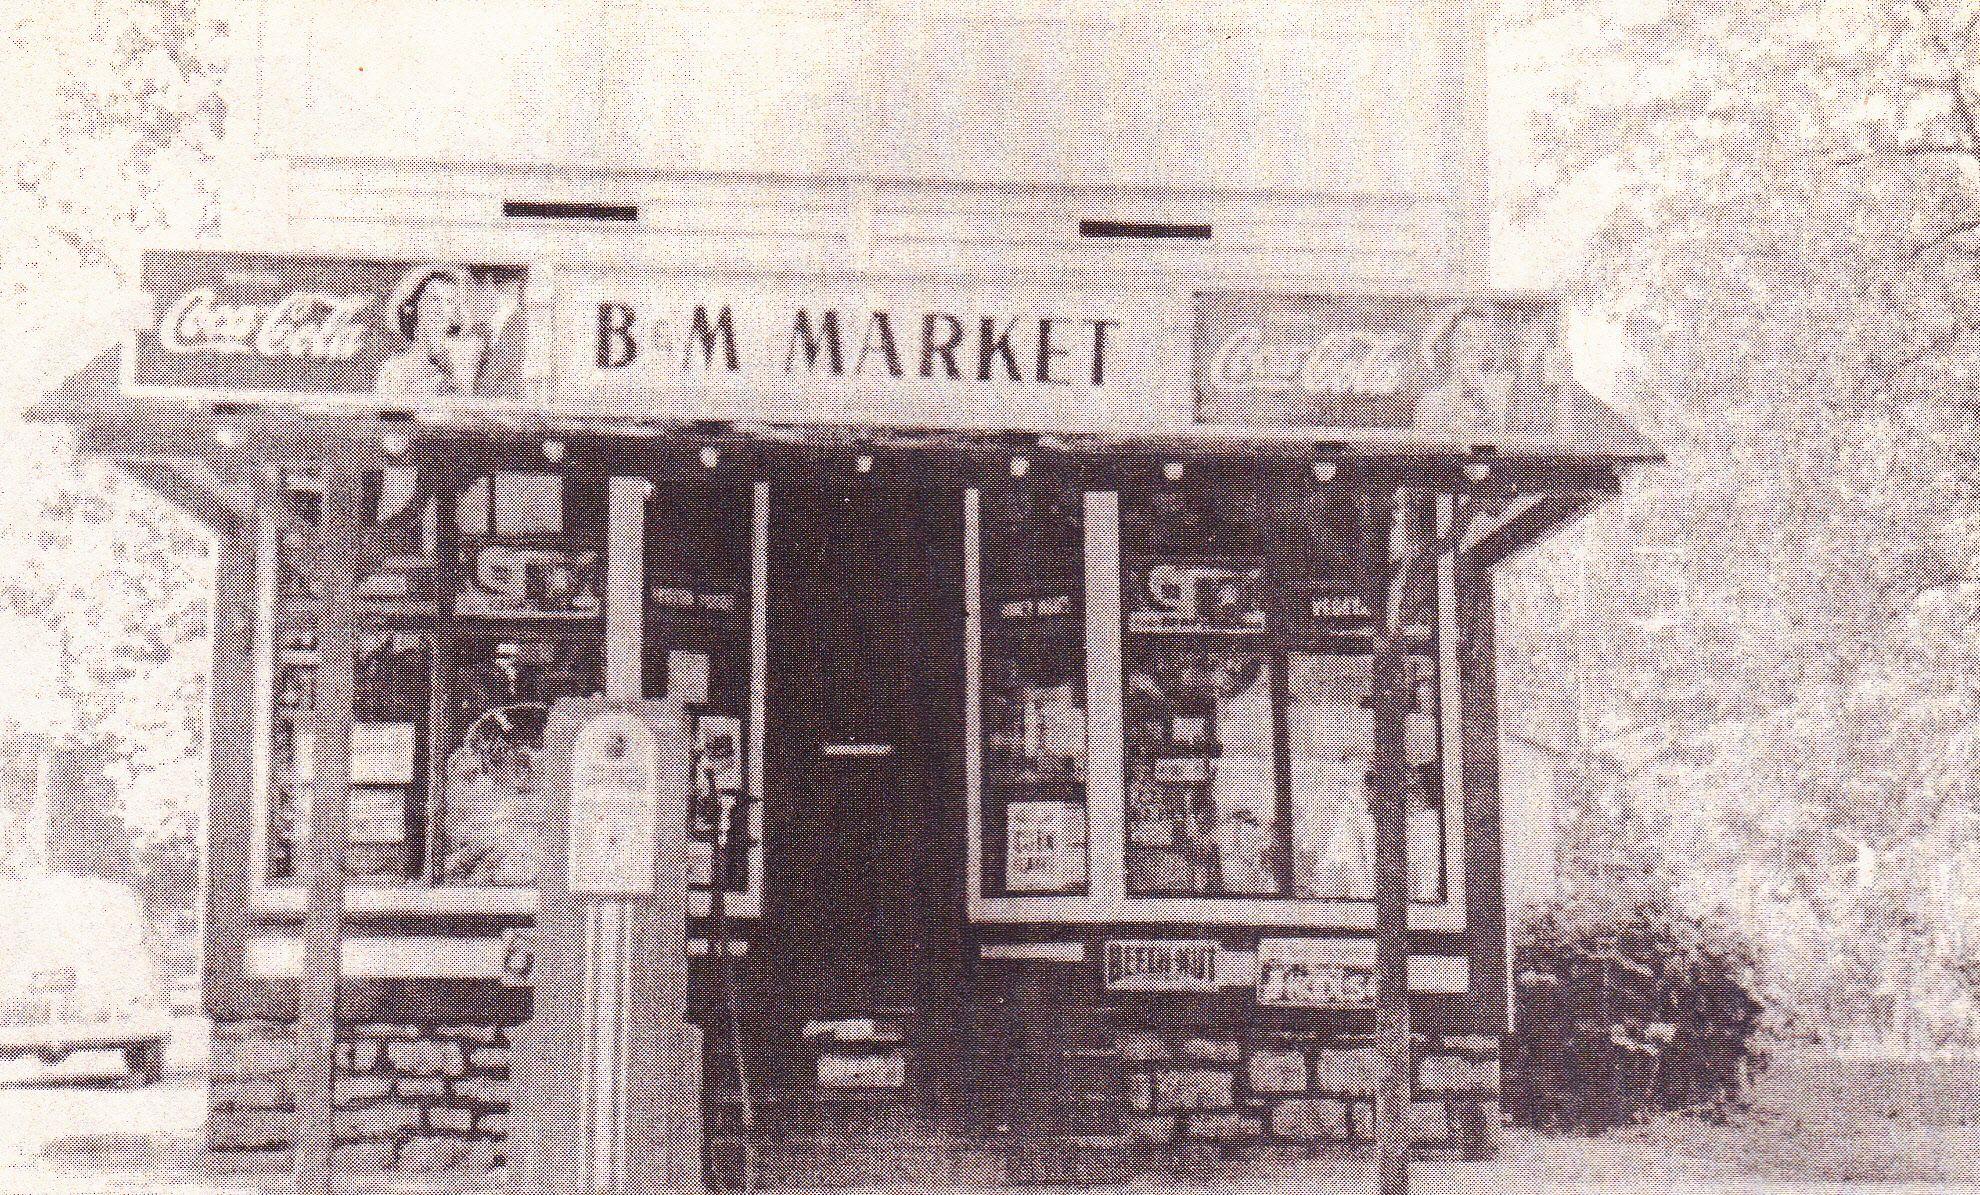 The B & M Market was located on the corner of Merrick and